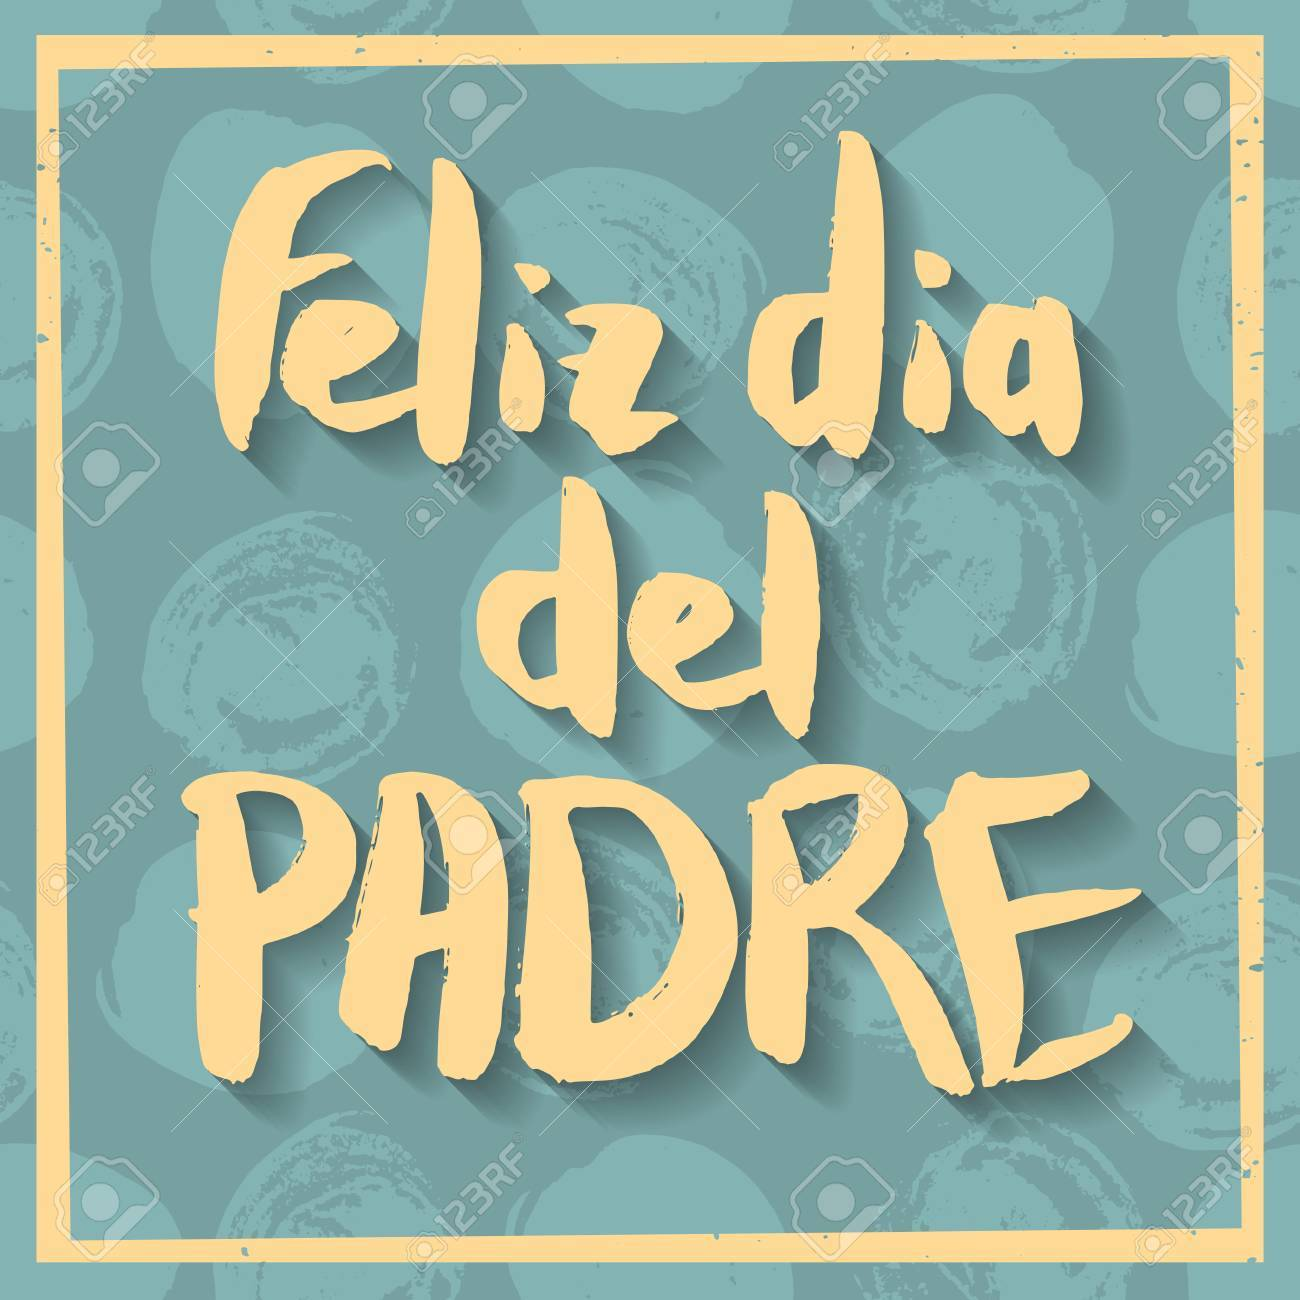 happy fathers day greeting card spanish phrase feliz dia del